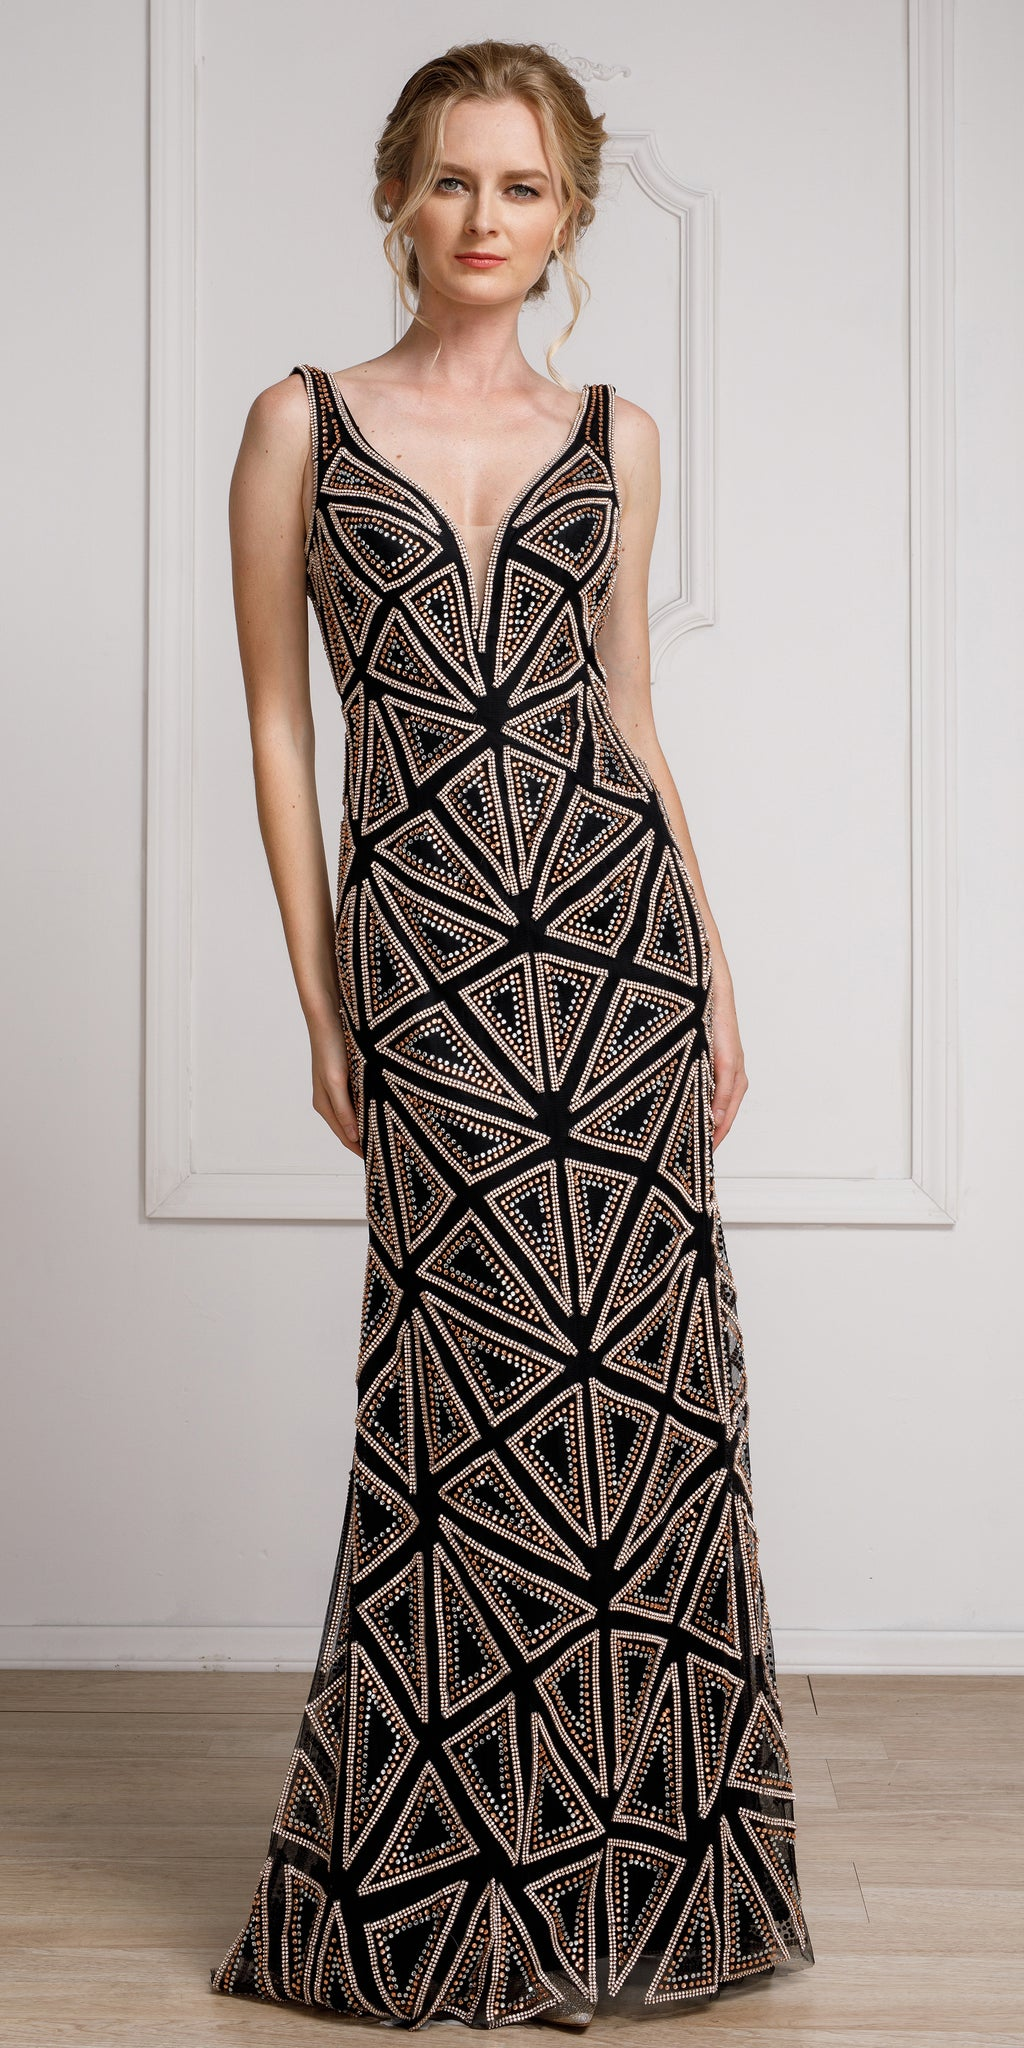 LAURA DECOLLETE NECKLINE GEOMETRIC DRESS